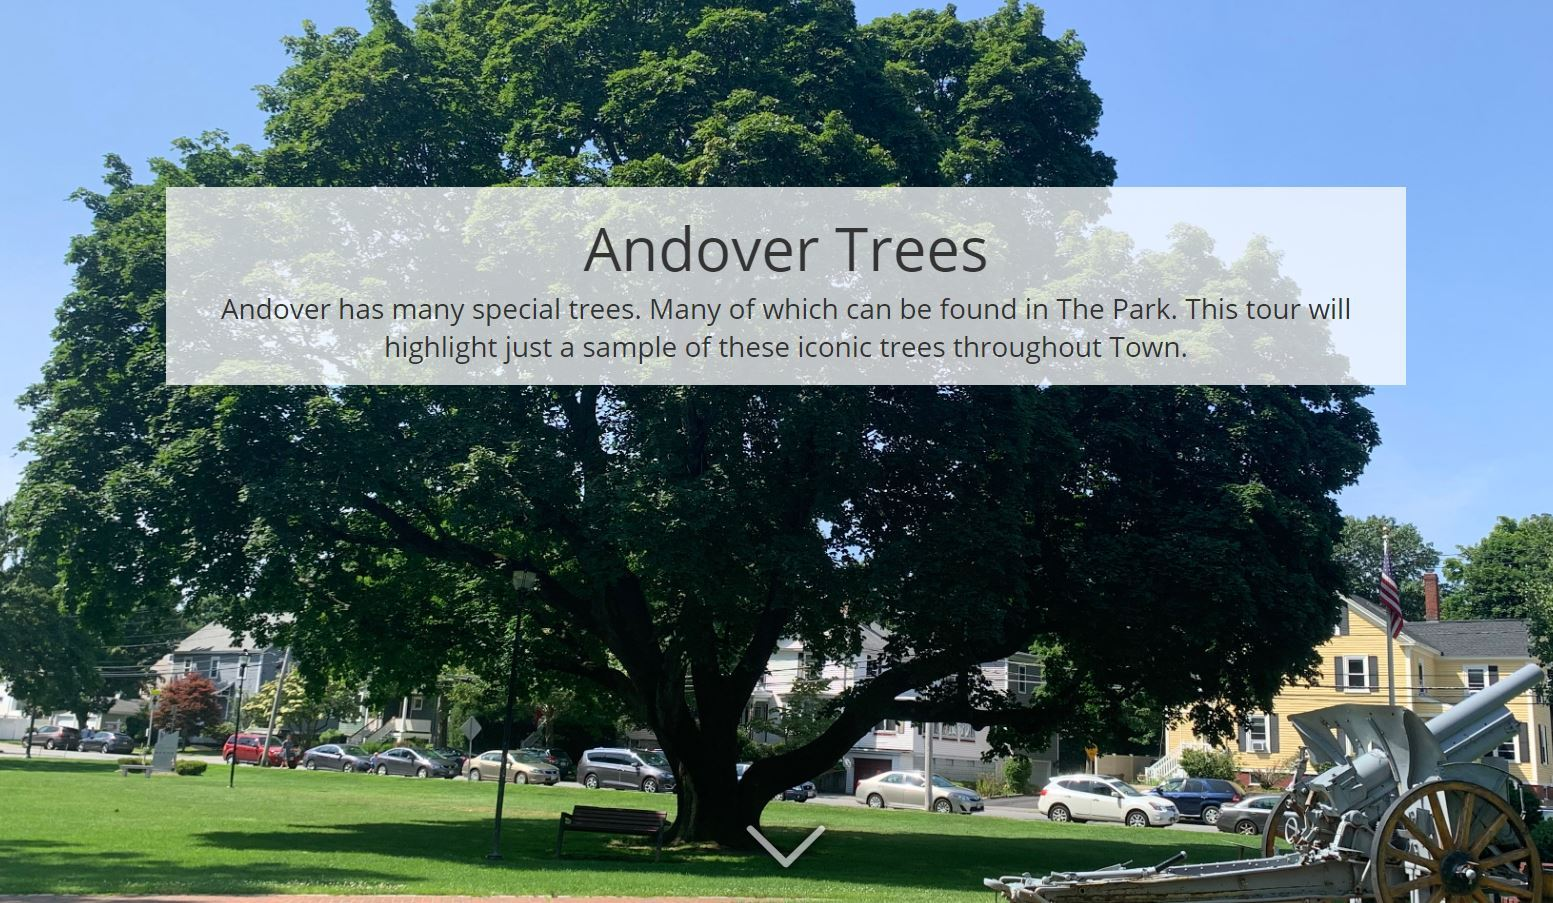 Andover Trees Photo Gallery Link